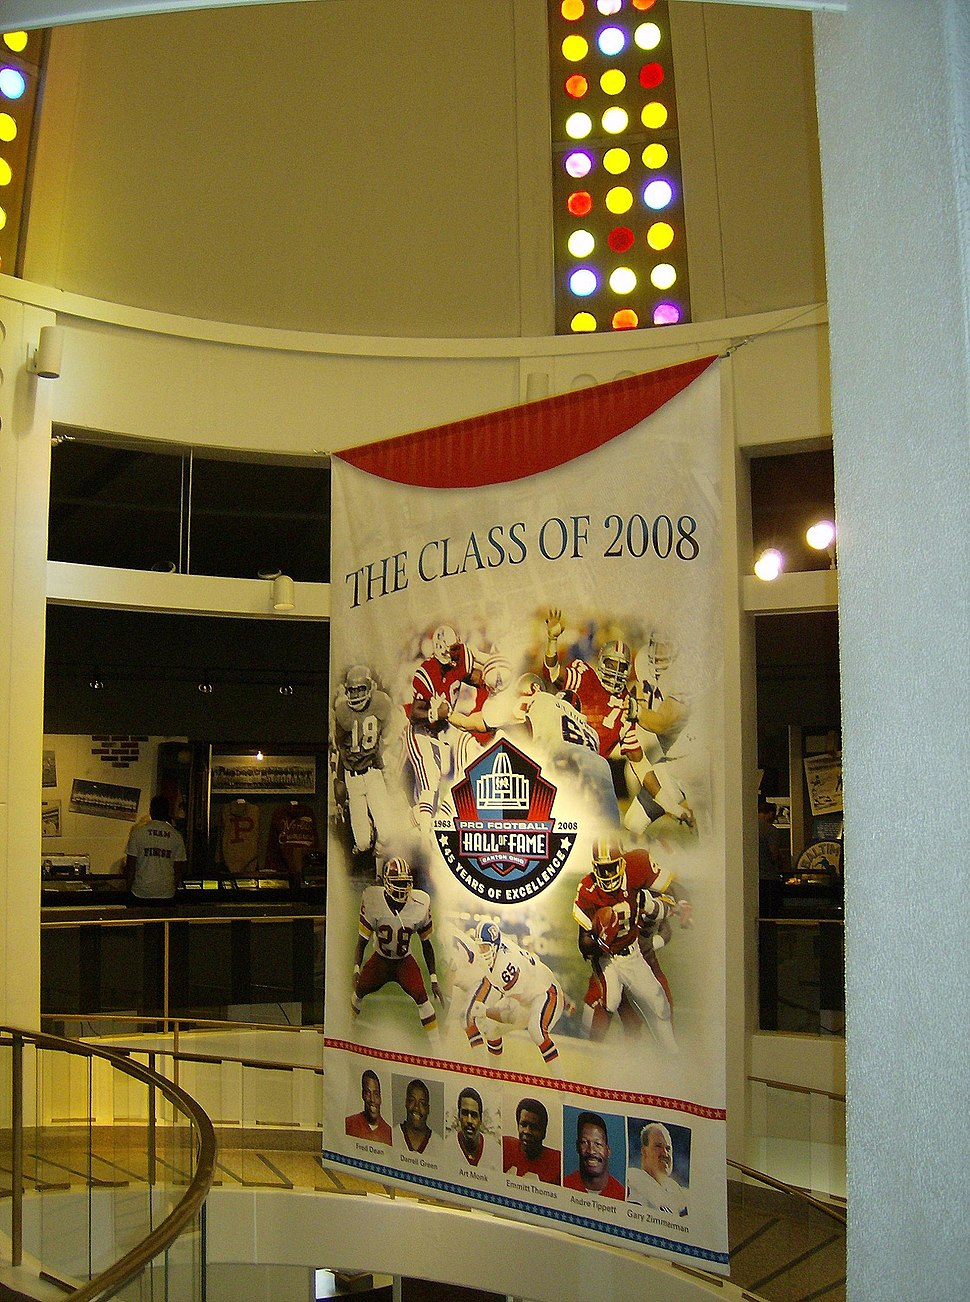 PFootballHall of fame original dome entrance